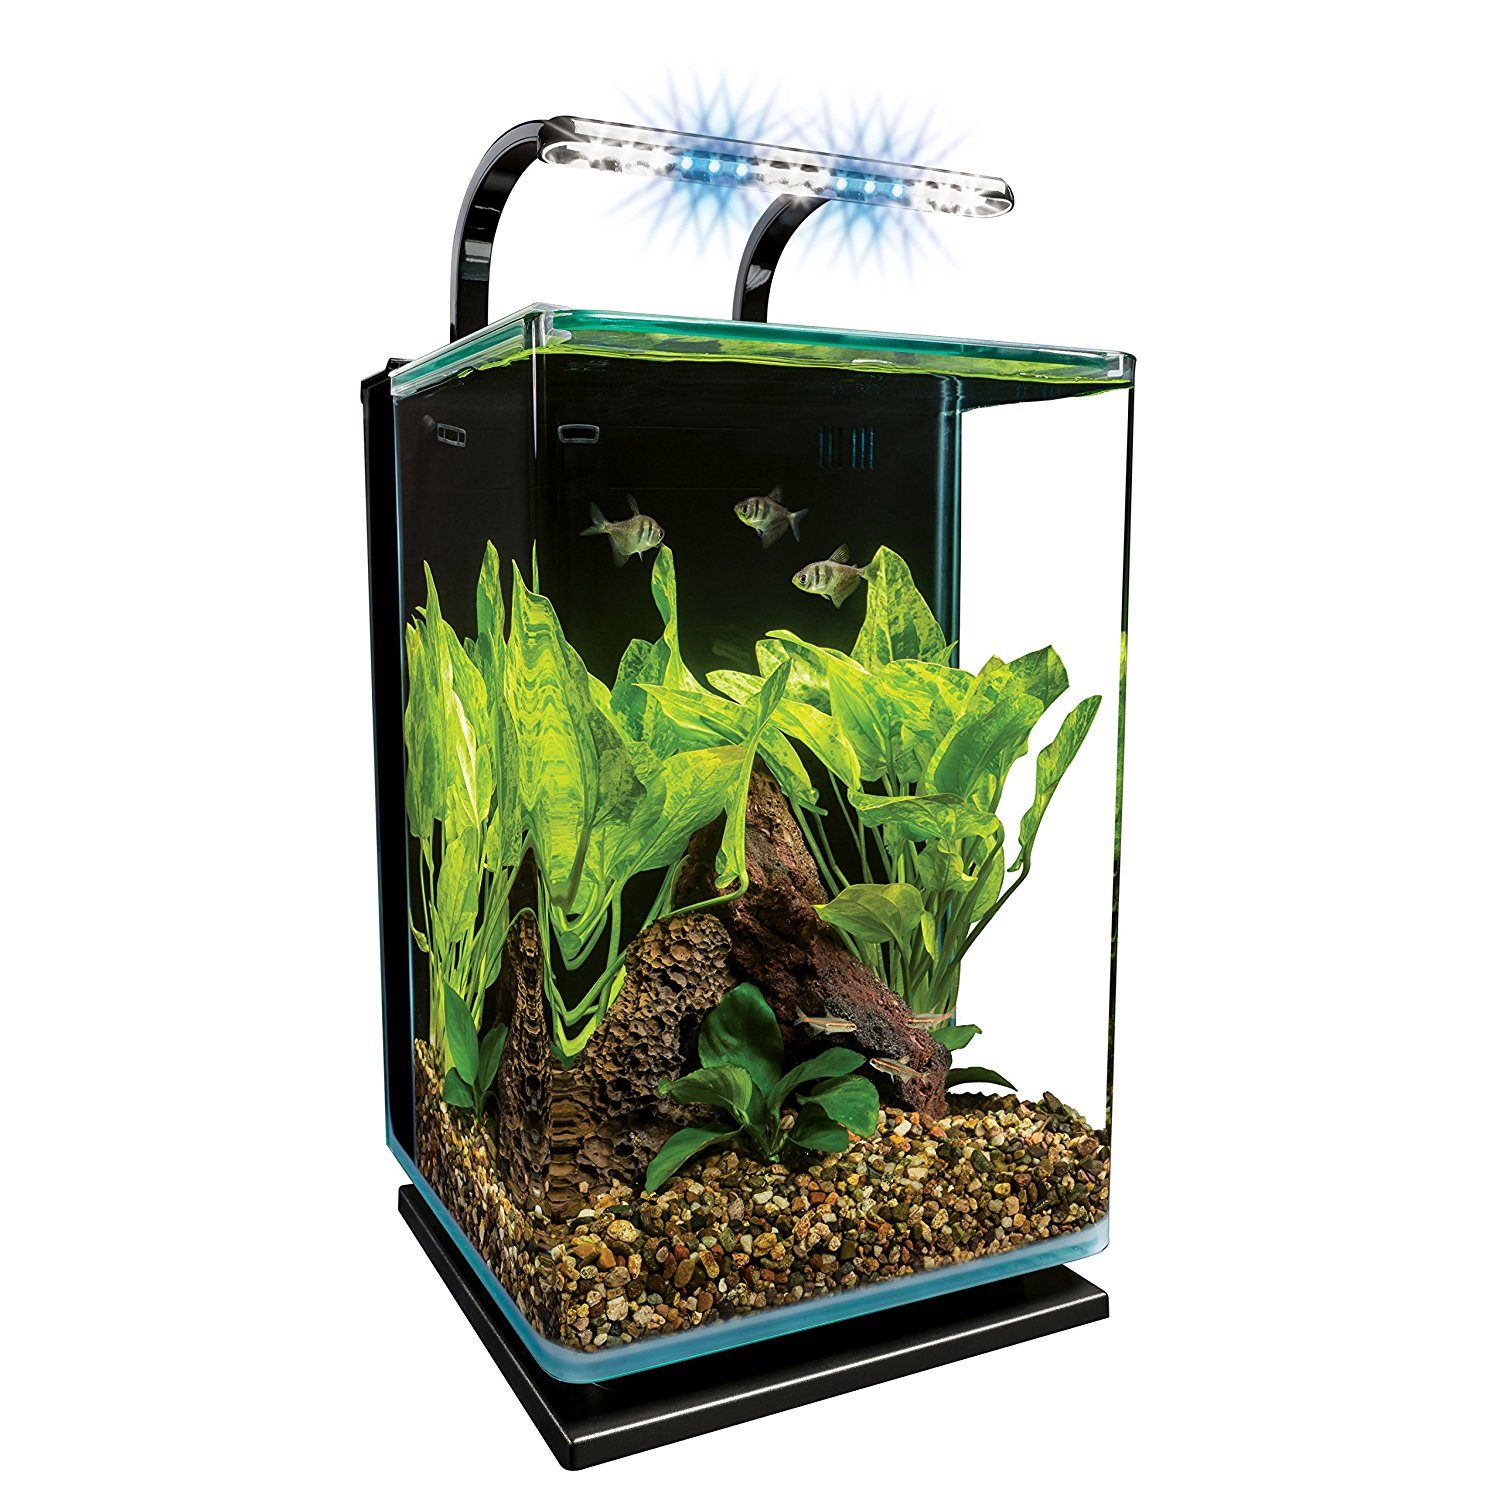 Marineland 5 galleon Contour Glass Aquarium Kit review